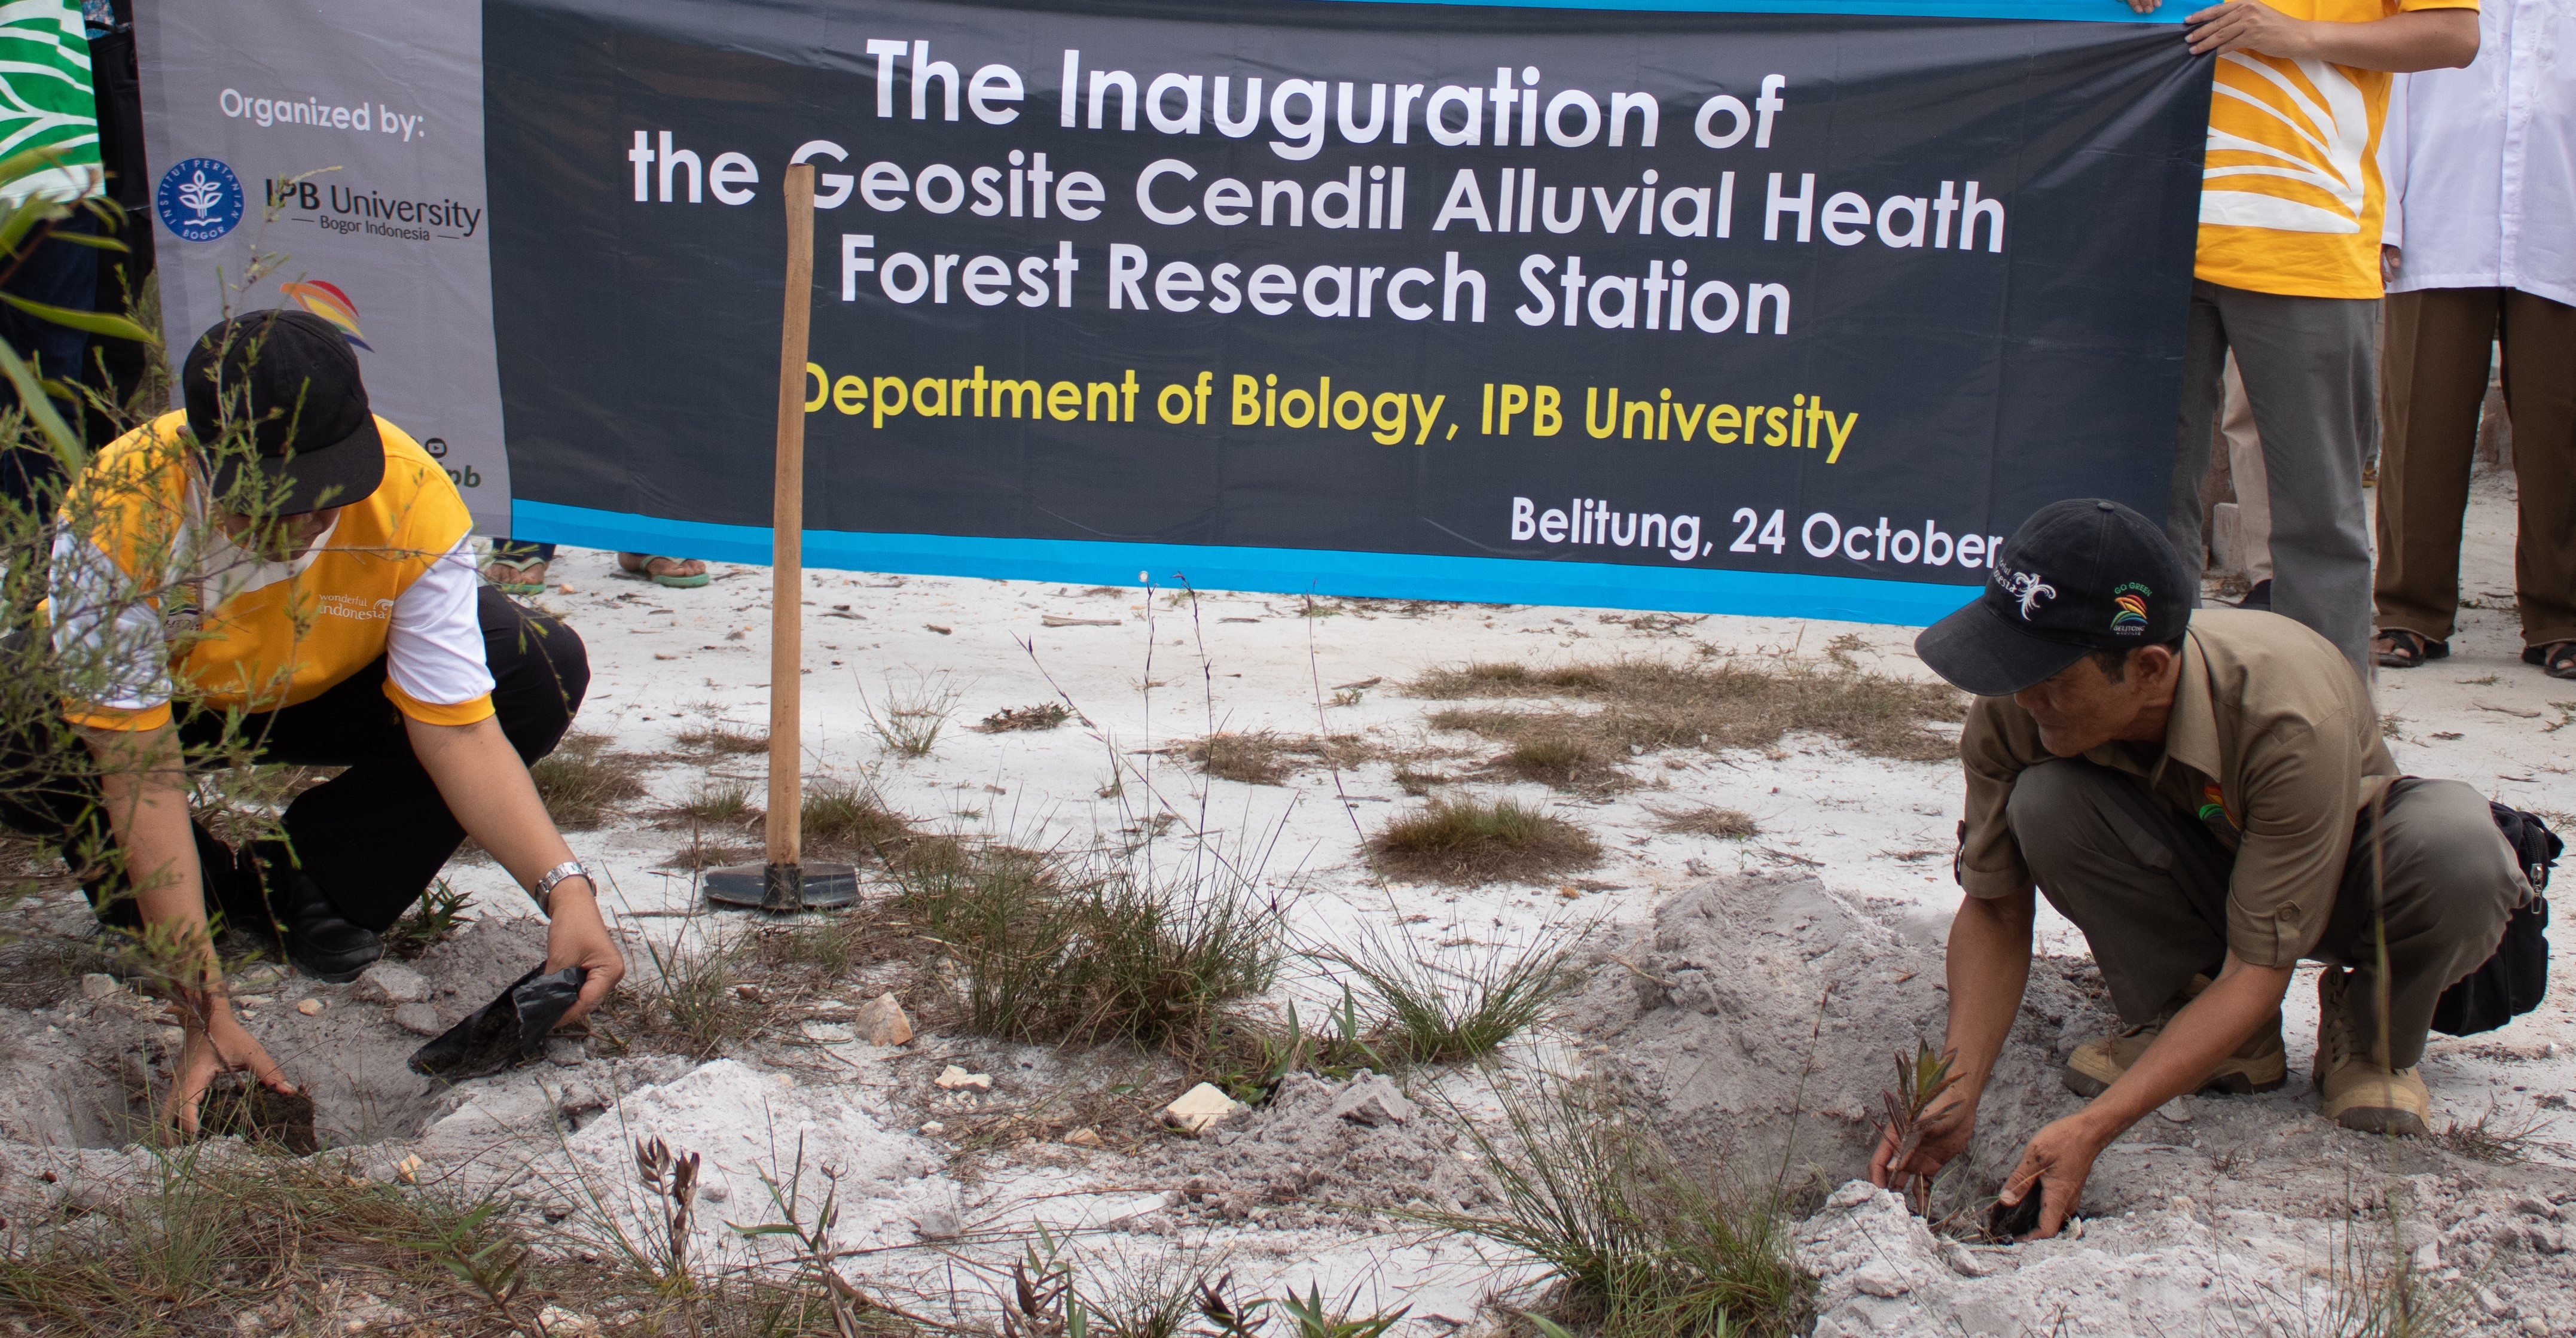 Department of Biology IPB, Inaugurates 2 Field Research Stations in Belitung